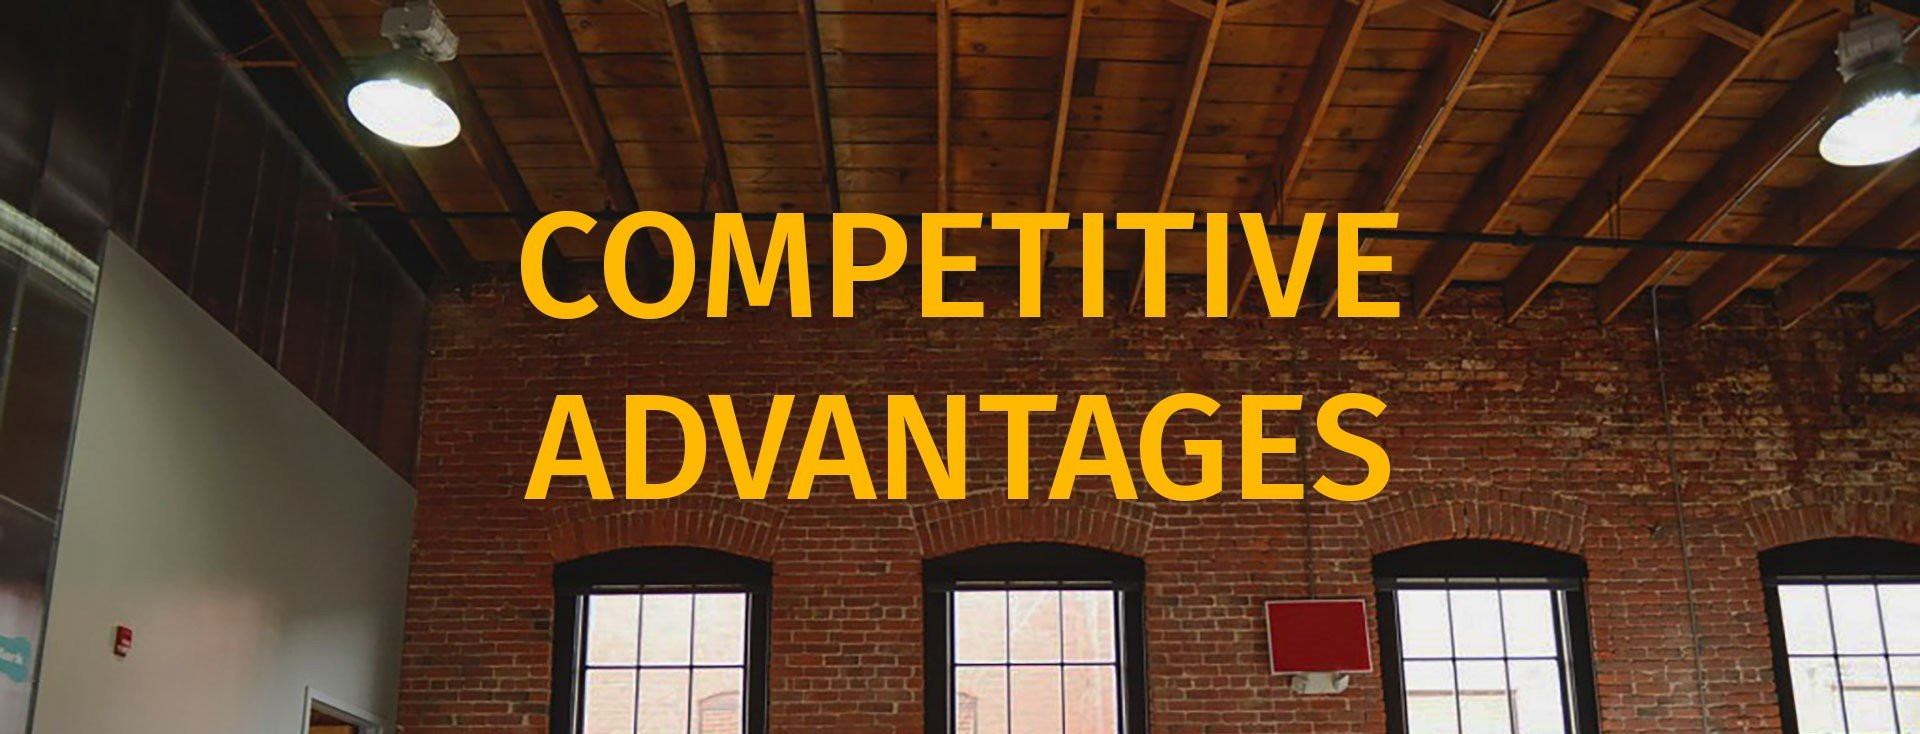 Competitive Advantages to Owners